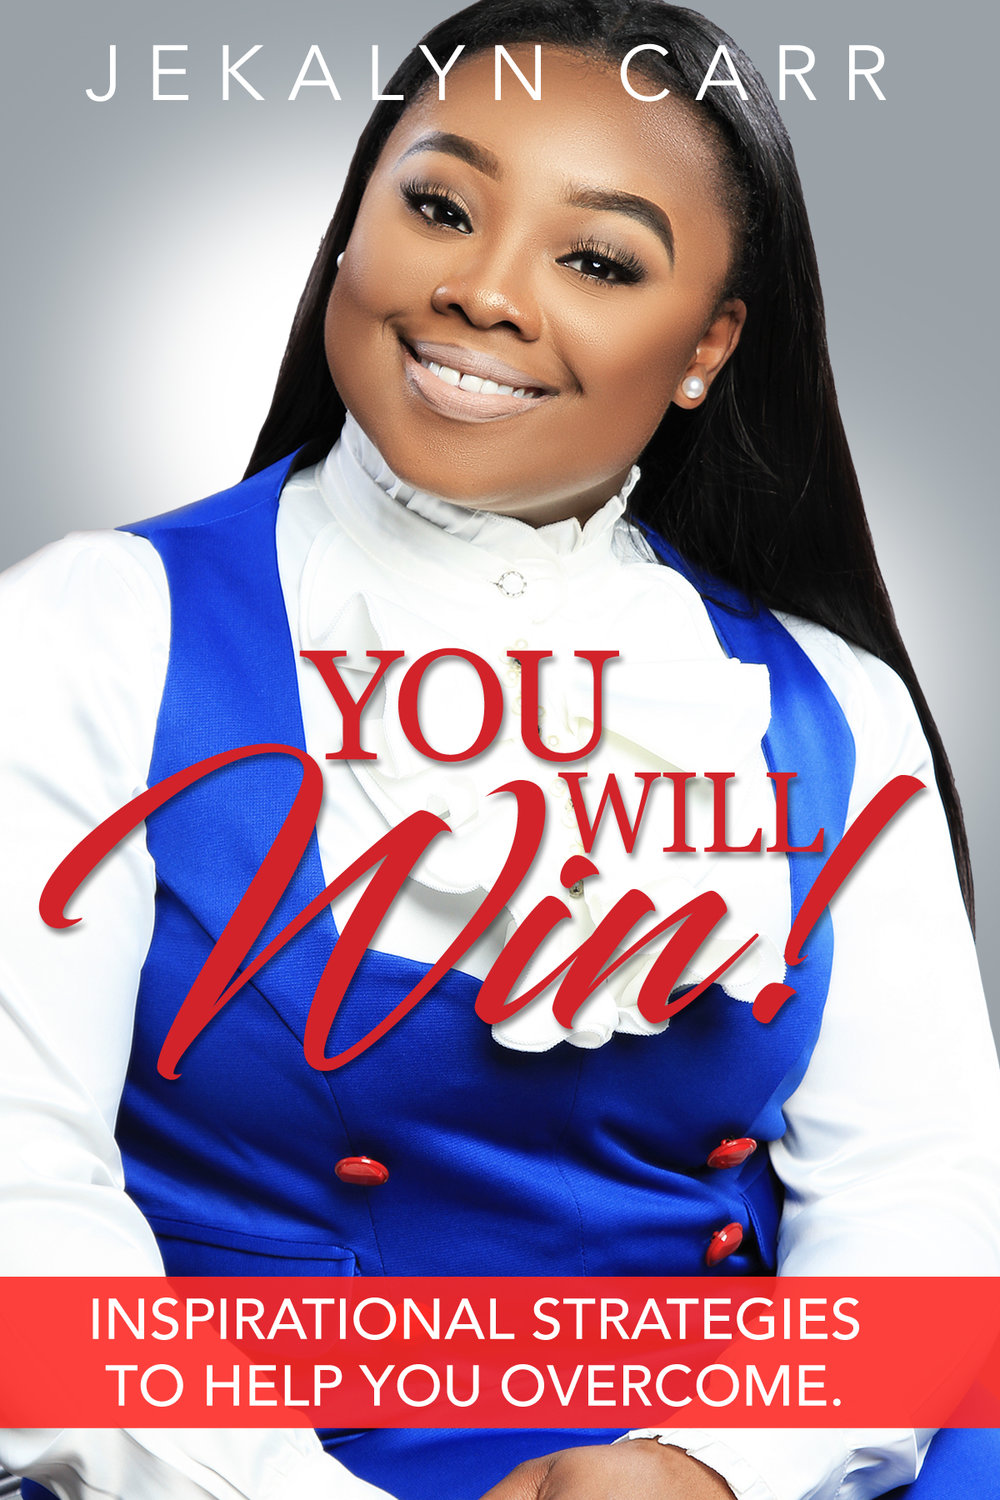 Amazon Bestseller! - Jekalyn believes that you should live your life as a blessed person. She loves to see people living out their dreams. You Will Win! encourages you to create that opportunity in your life. The message pushes you above your circumstances and helps you overcome. You were created to be above the things of this world and not underneath them. You Will Win! is a reminder that your words have the power to create and you must use them to speak the happiness and joy that you want in your life. Your winning season is not related to the natural seasons of spring, winter, summer or fall, but to a lifetime of peace and joy. Remember, you will win!